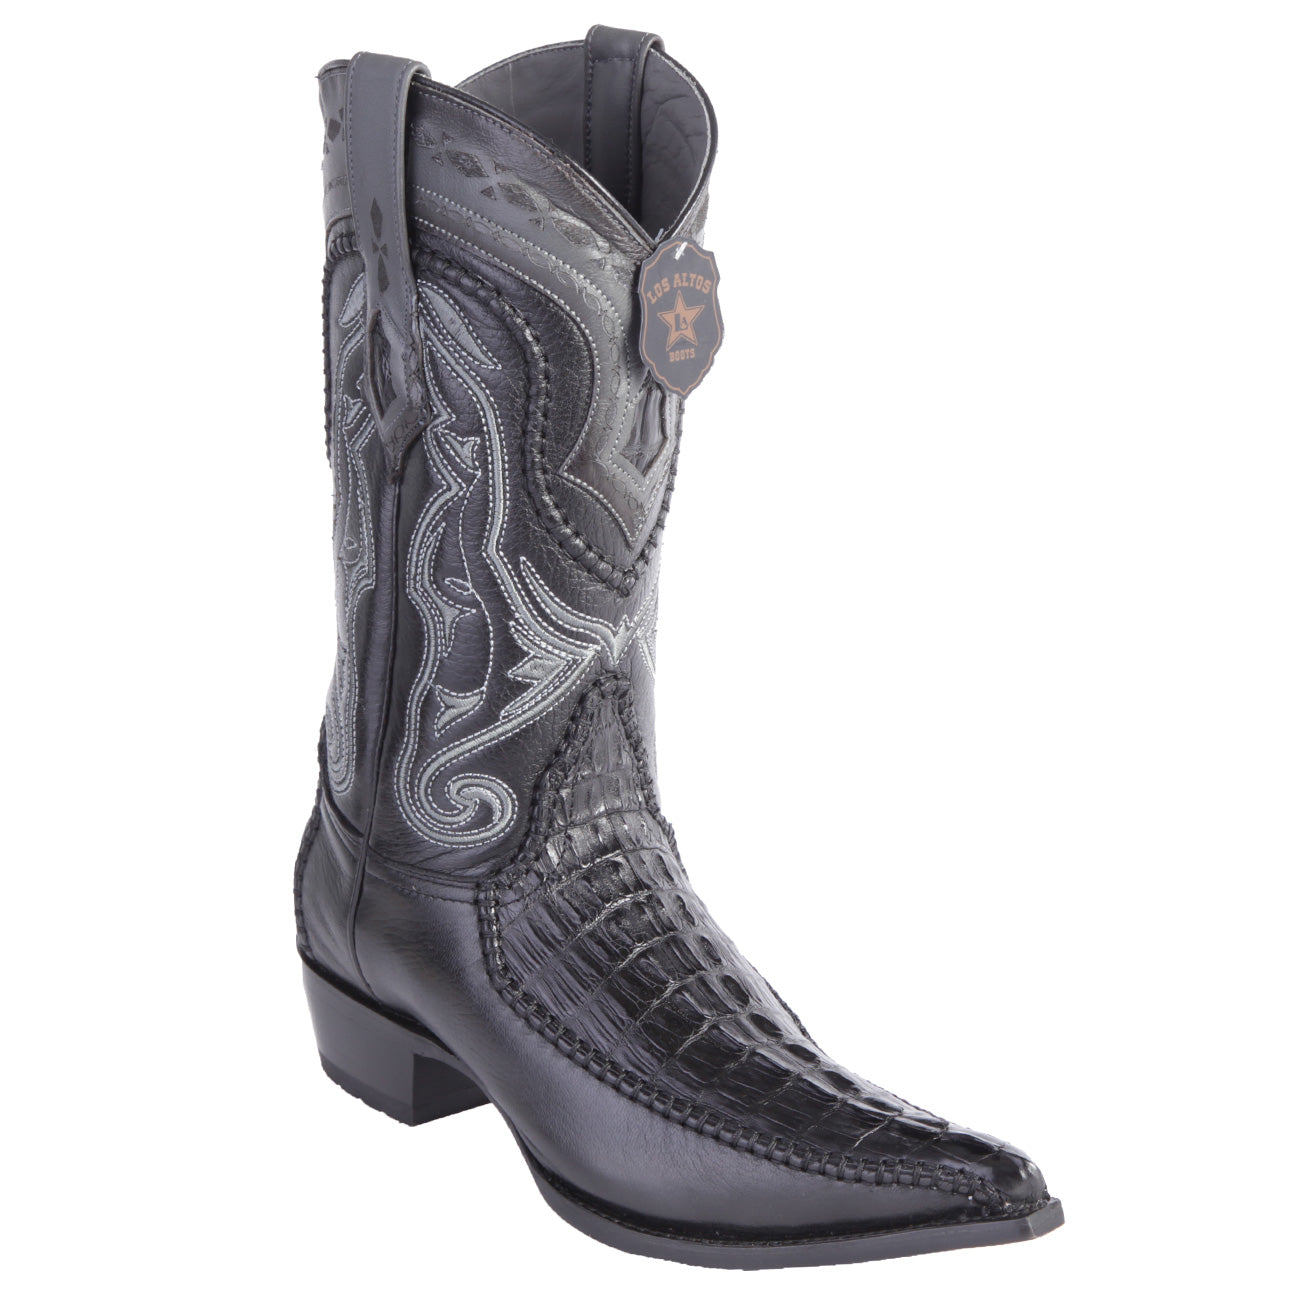 9e48e74dd92 Los Altos Boots Caiman Tail 3x Toe Stitched Boots - Black